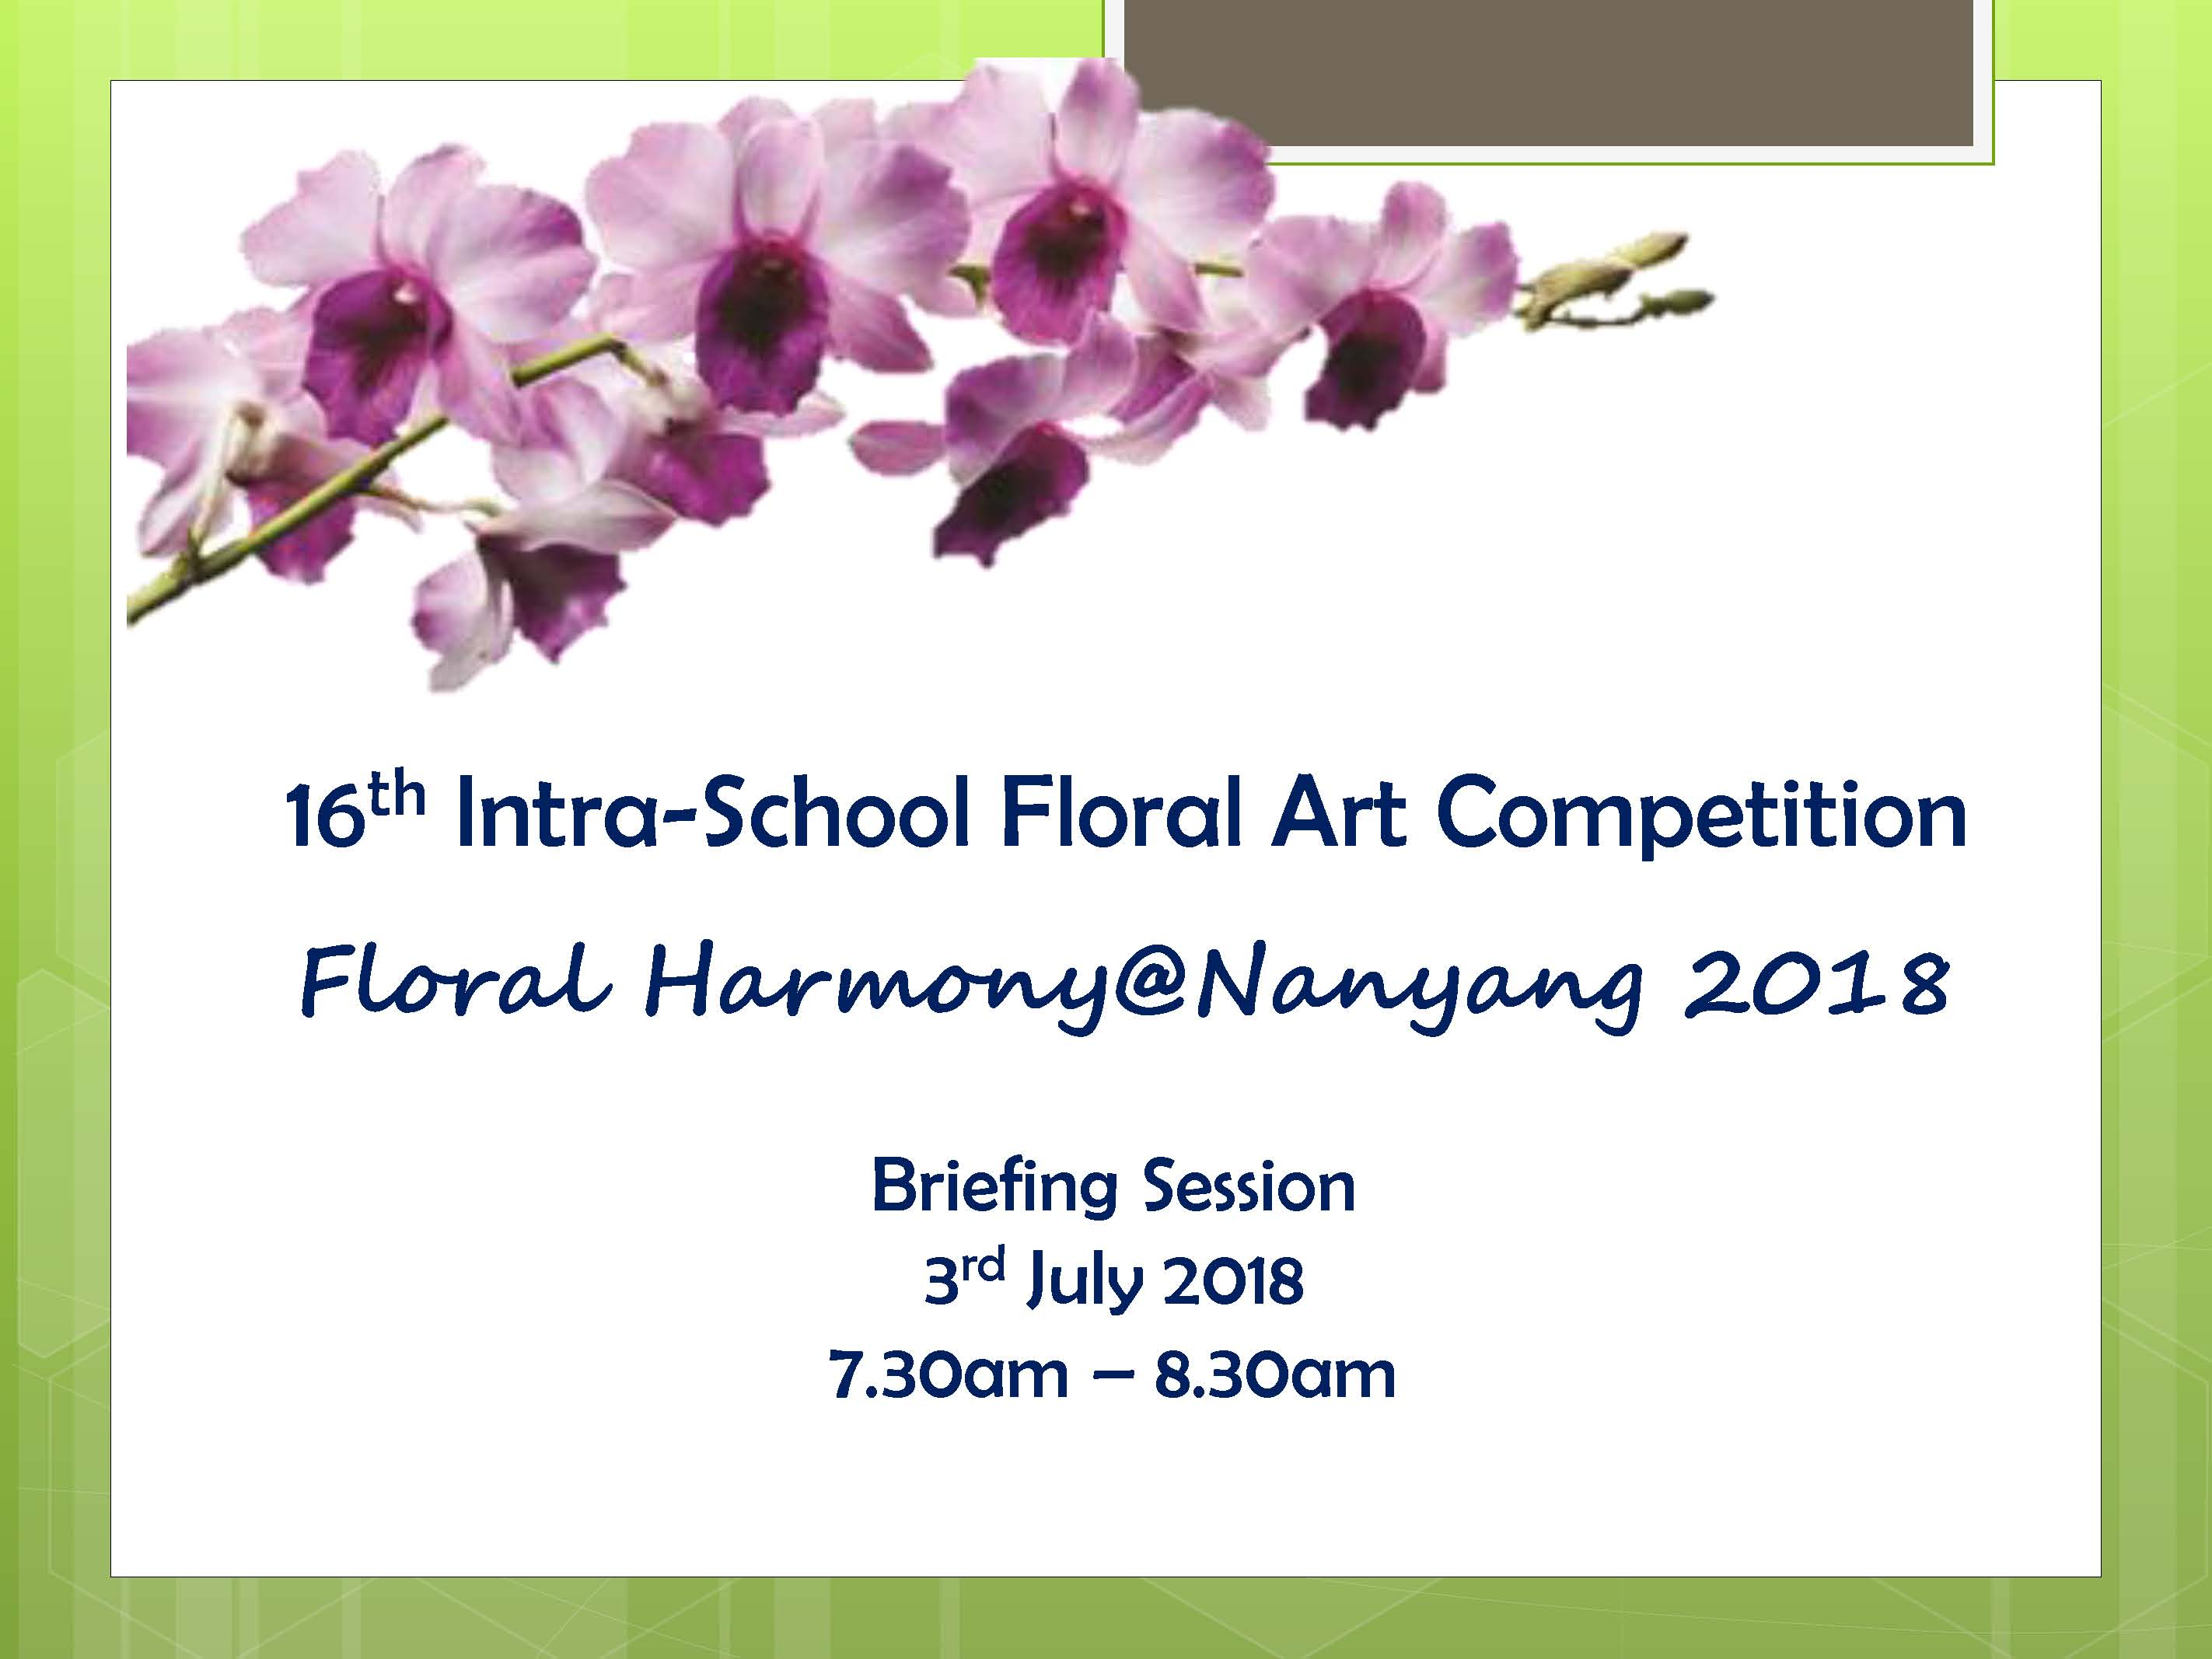 16th Intra-School Floral Art Competition Briefing